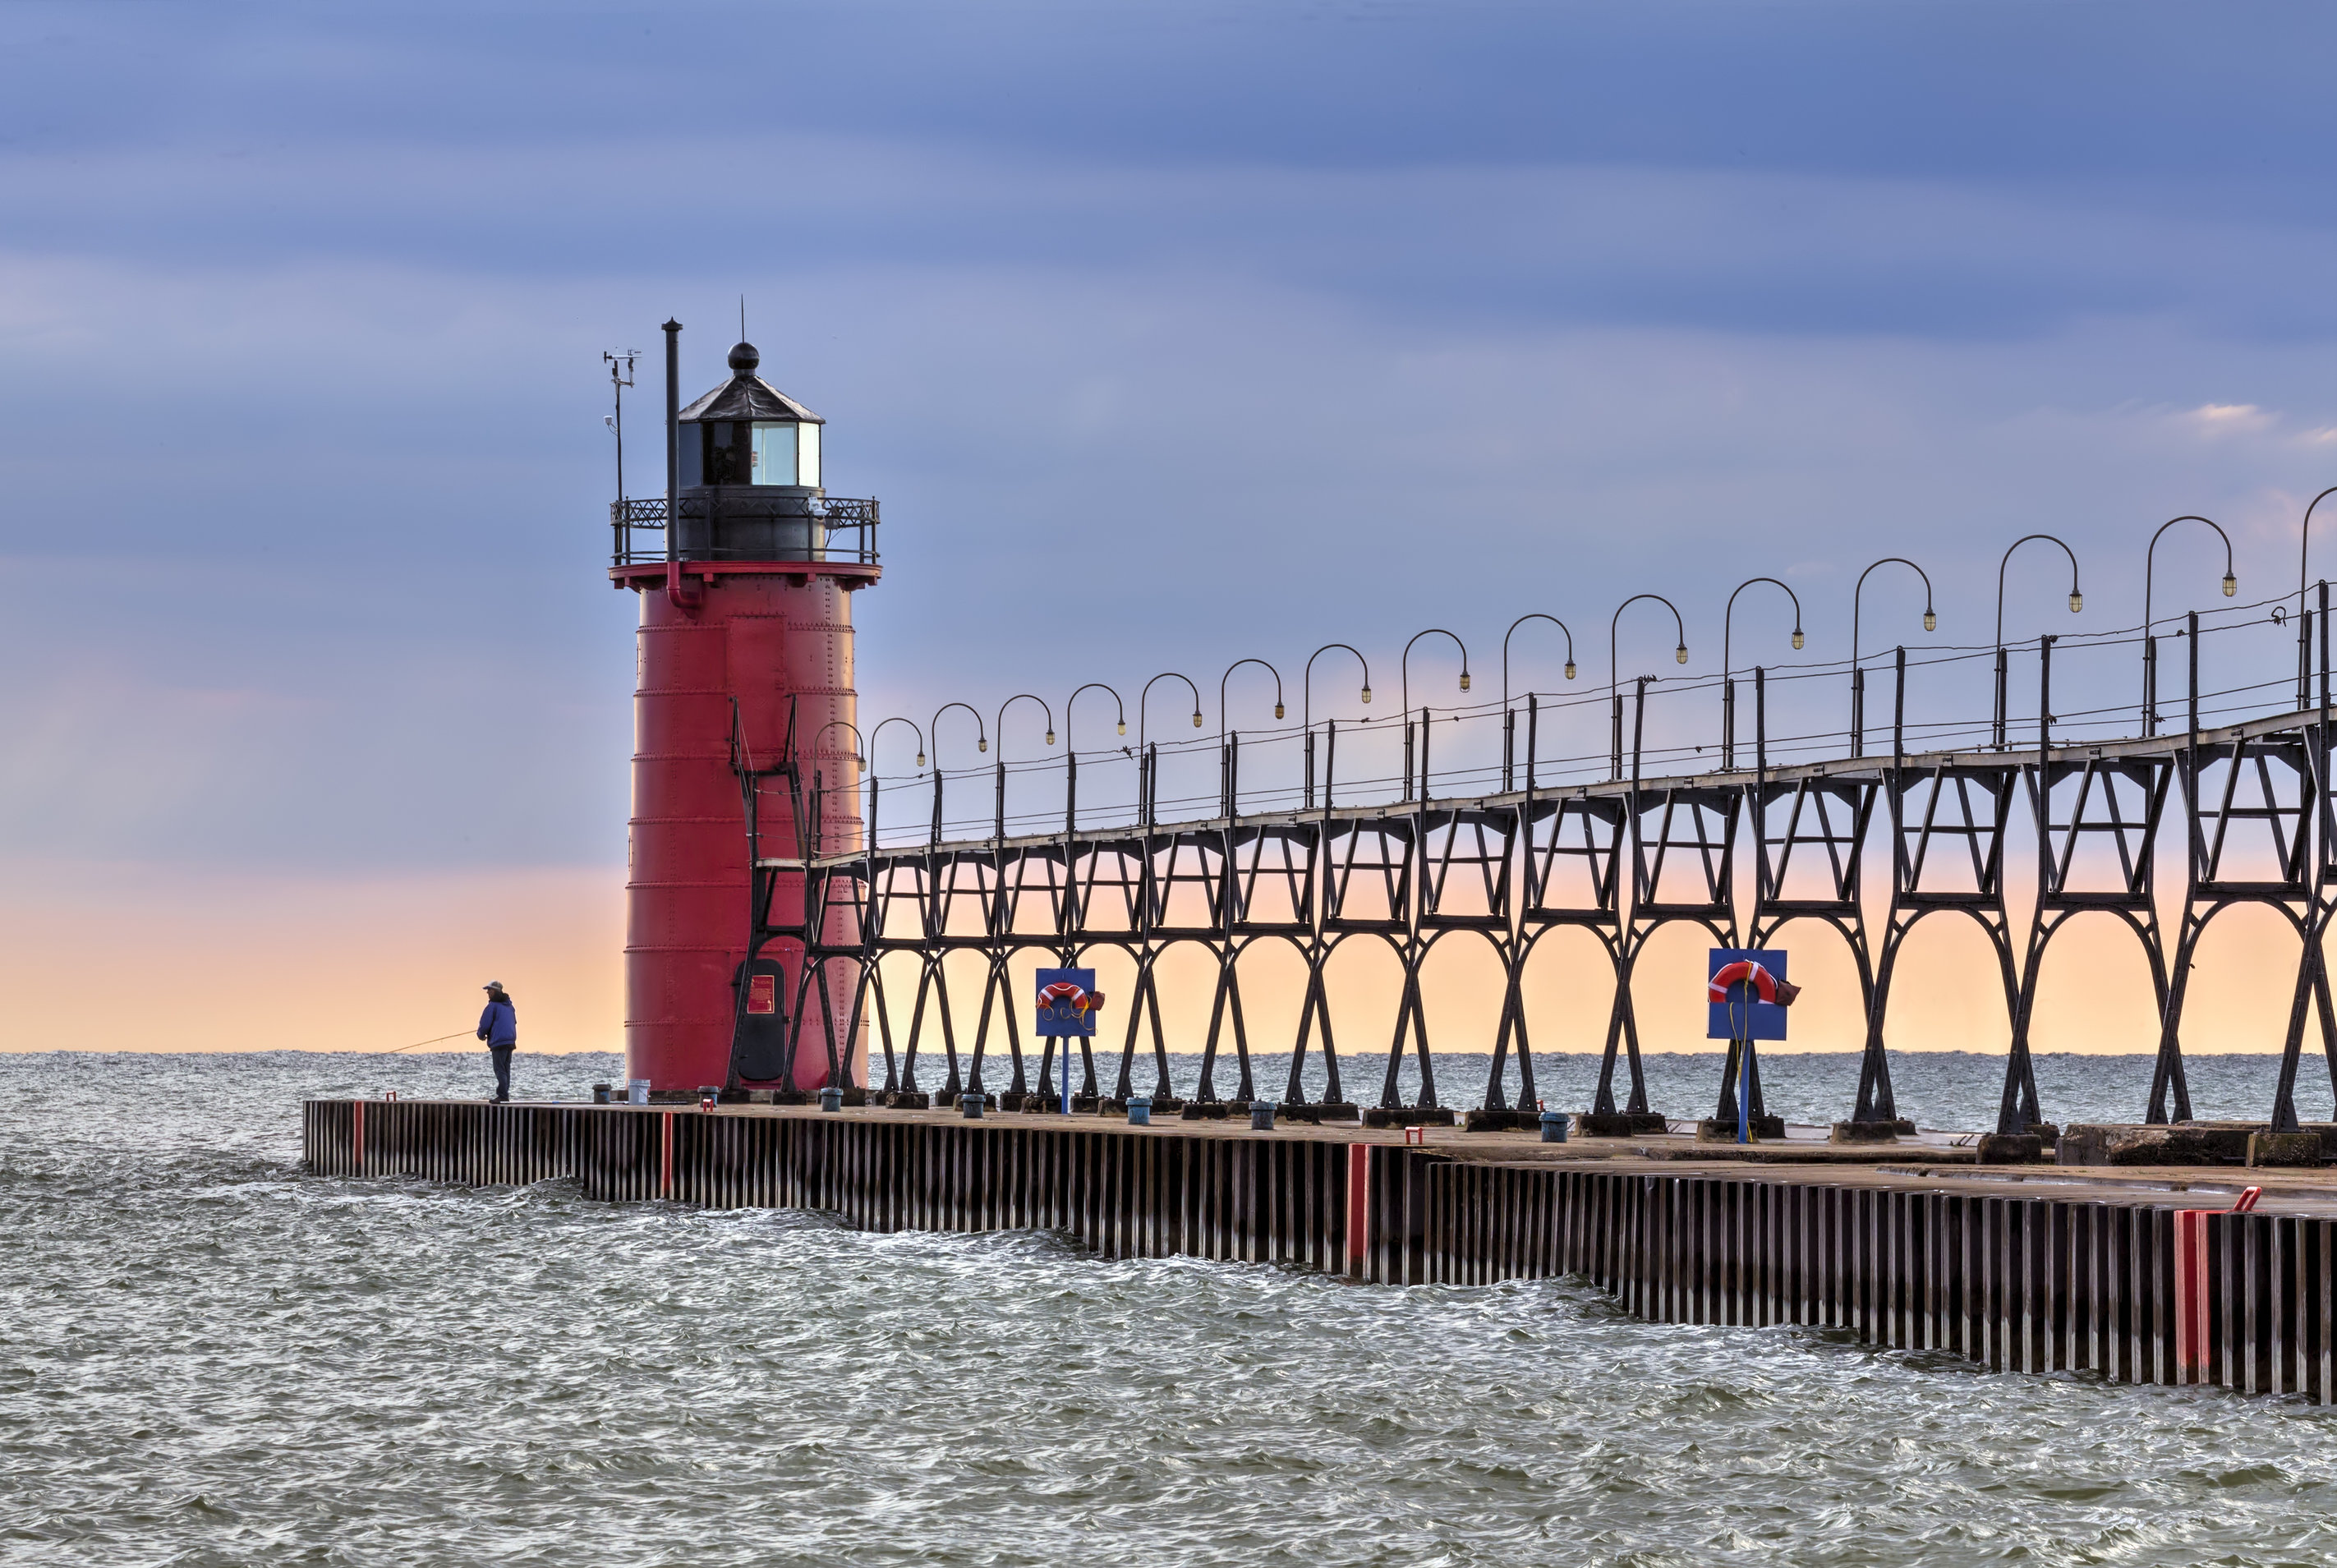 An angler fishing on Lake Michigan, one of the best fishing spots near Chicago, in South Haven right next to the Lighthouse after the storm